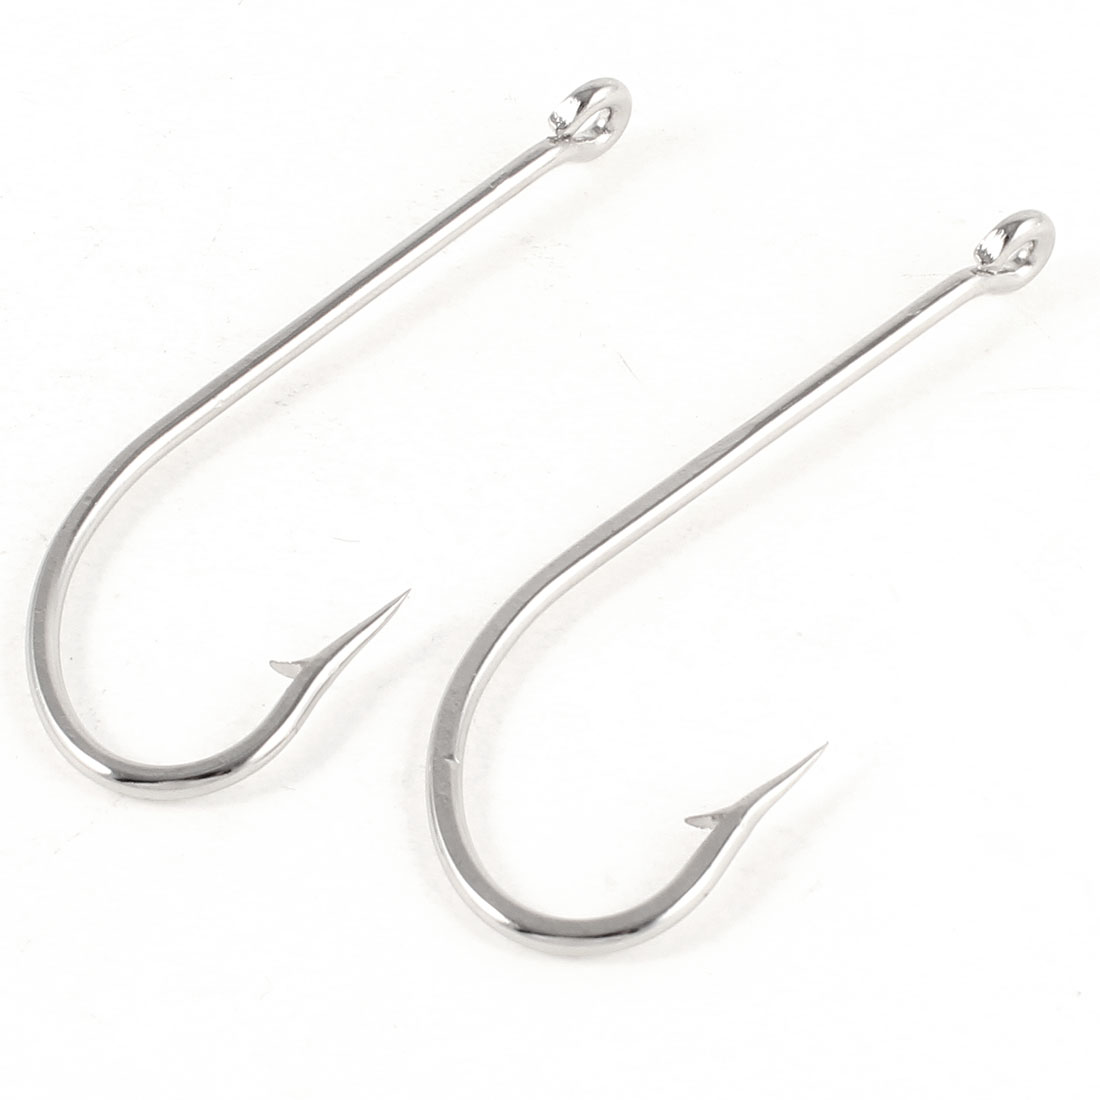 2 Pcs Outdoor Fishing Angle Tackle Silver Tone Eyelet Barb Fish Hooks